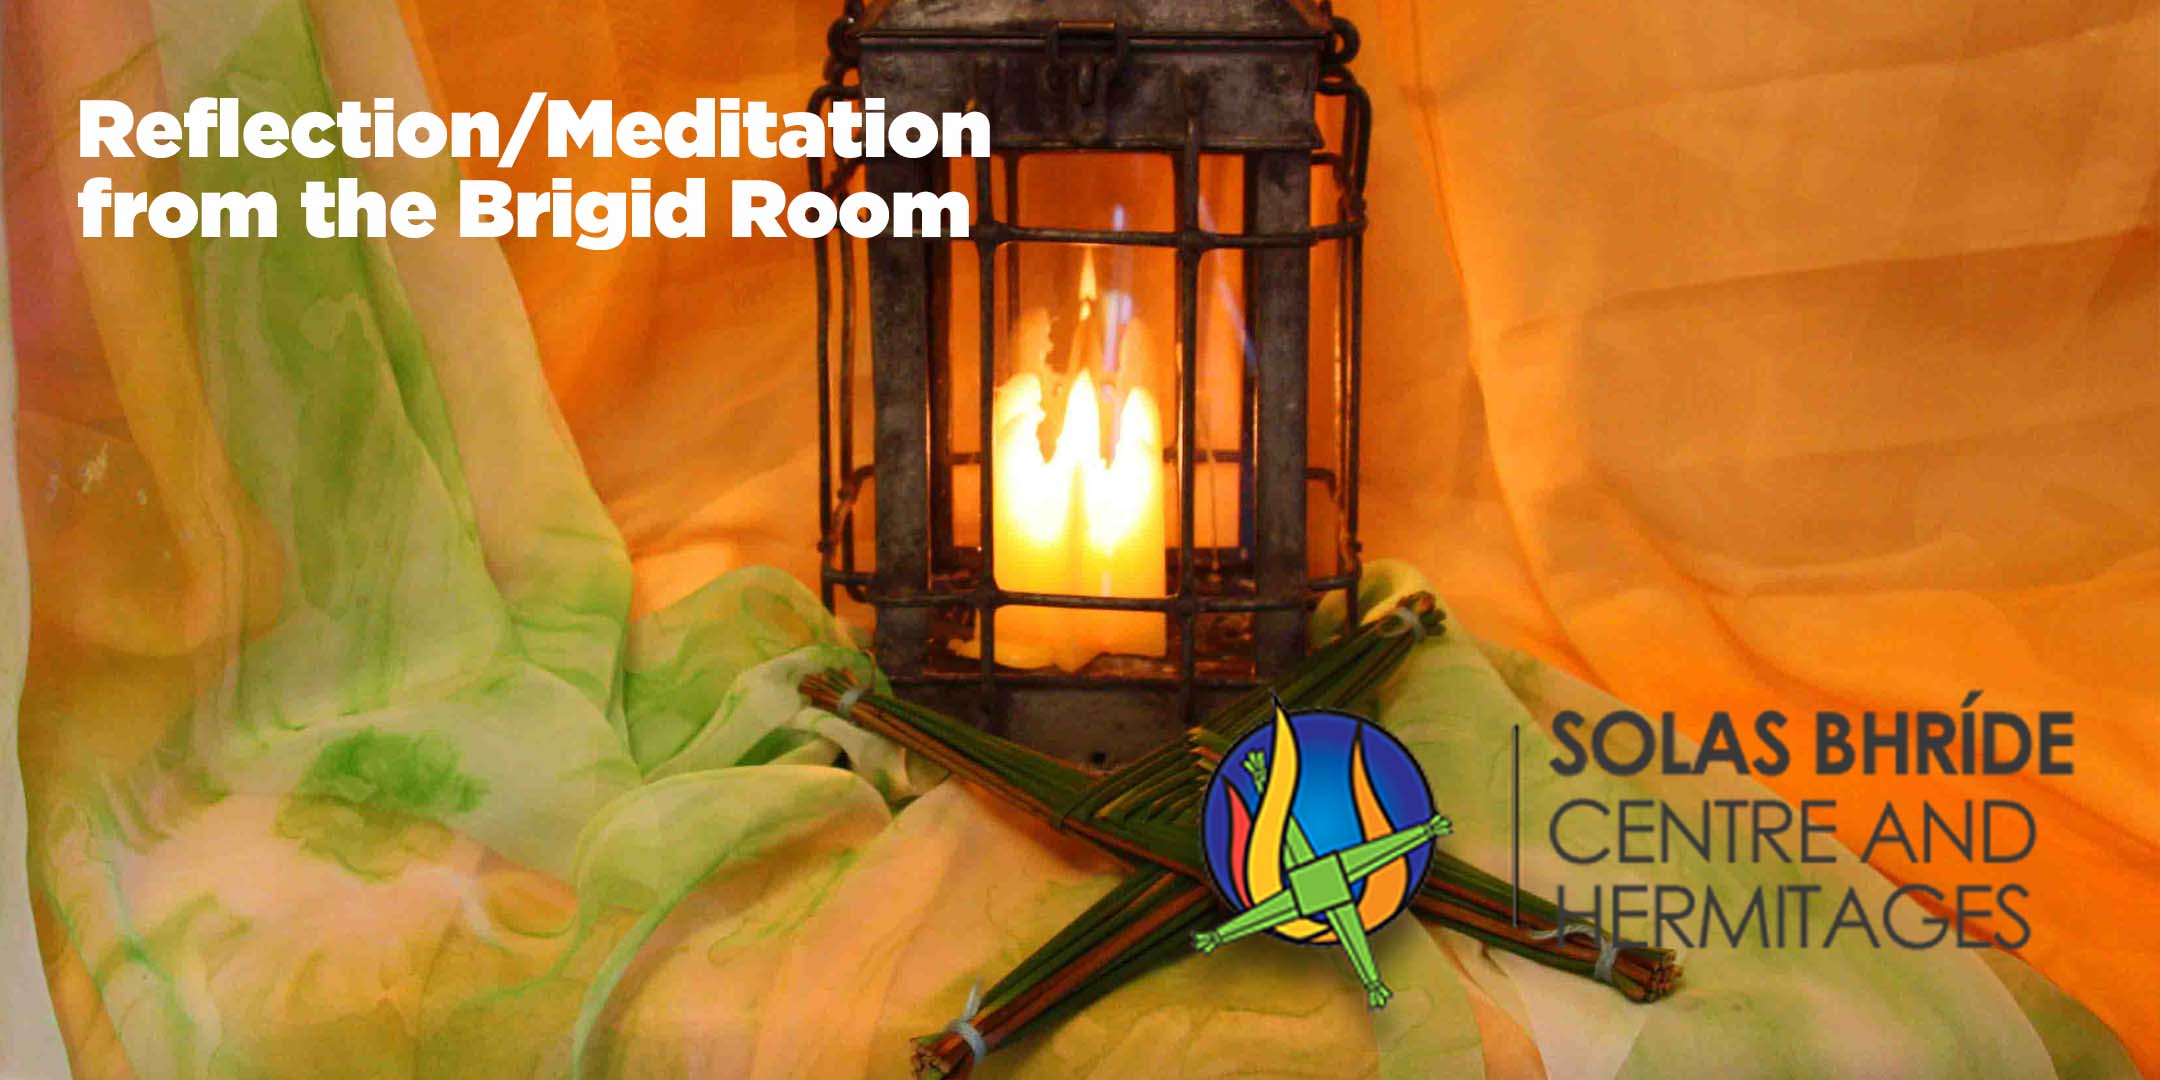 brigid flame reflection meditation centre kildare